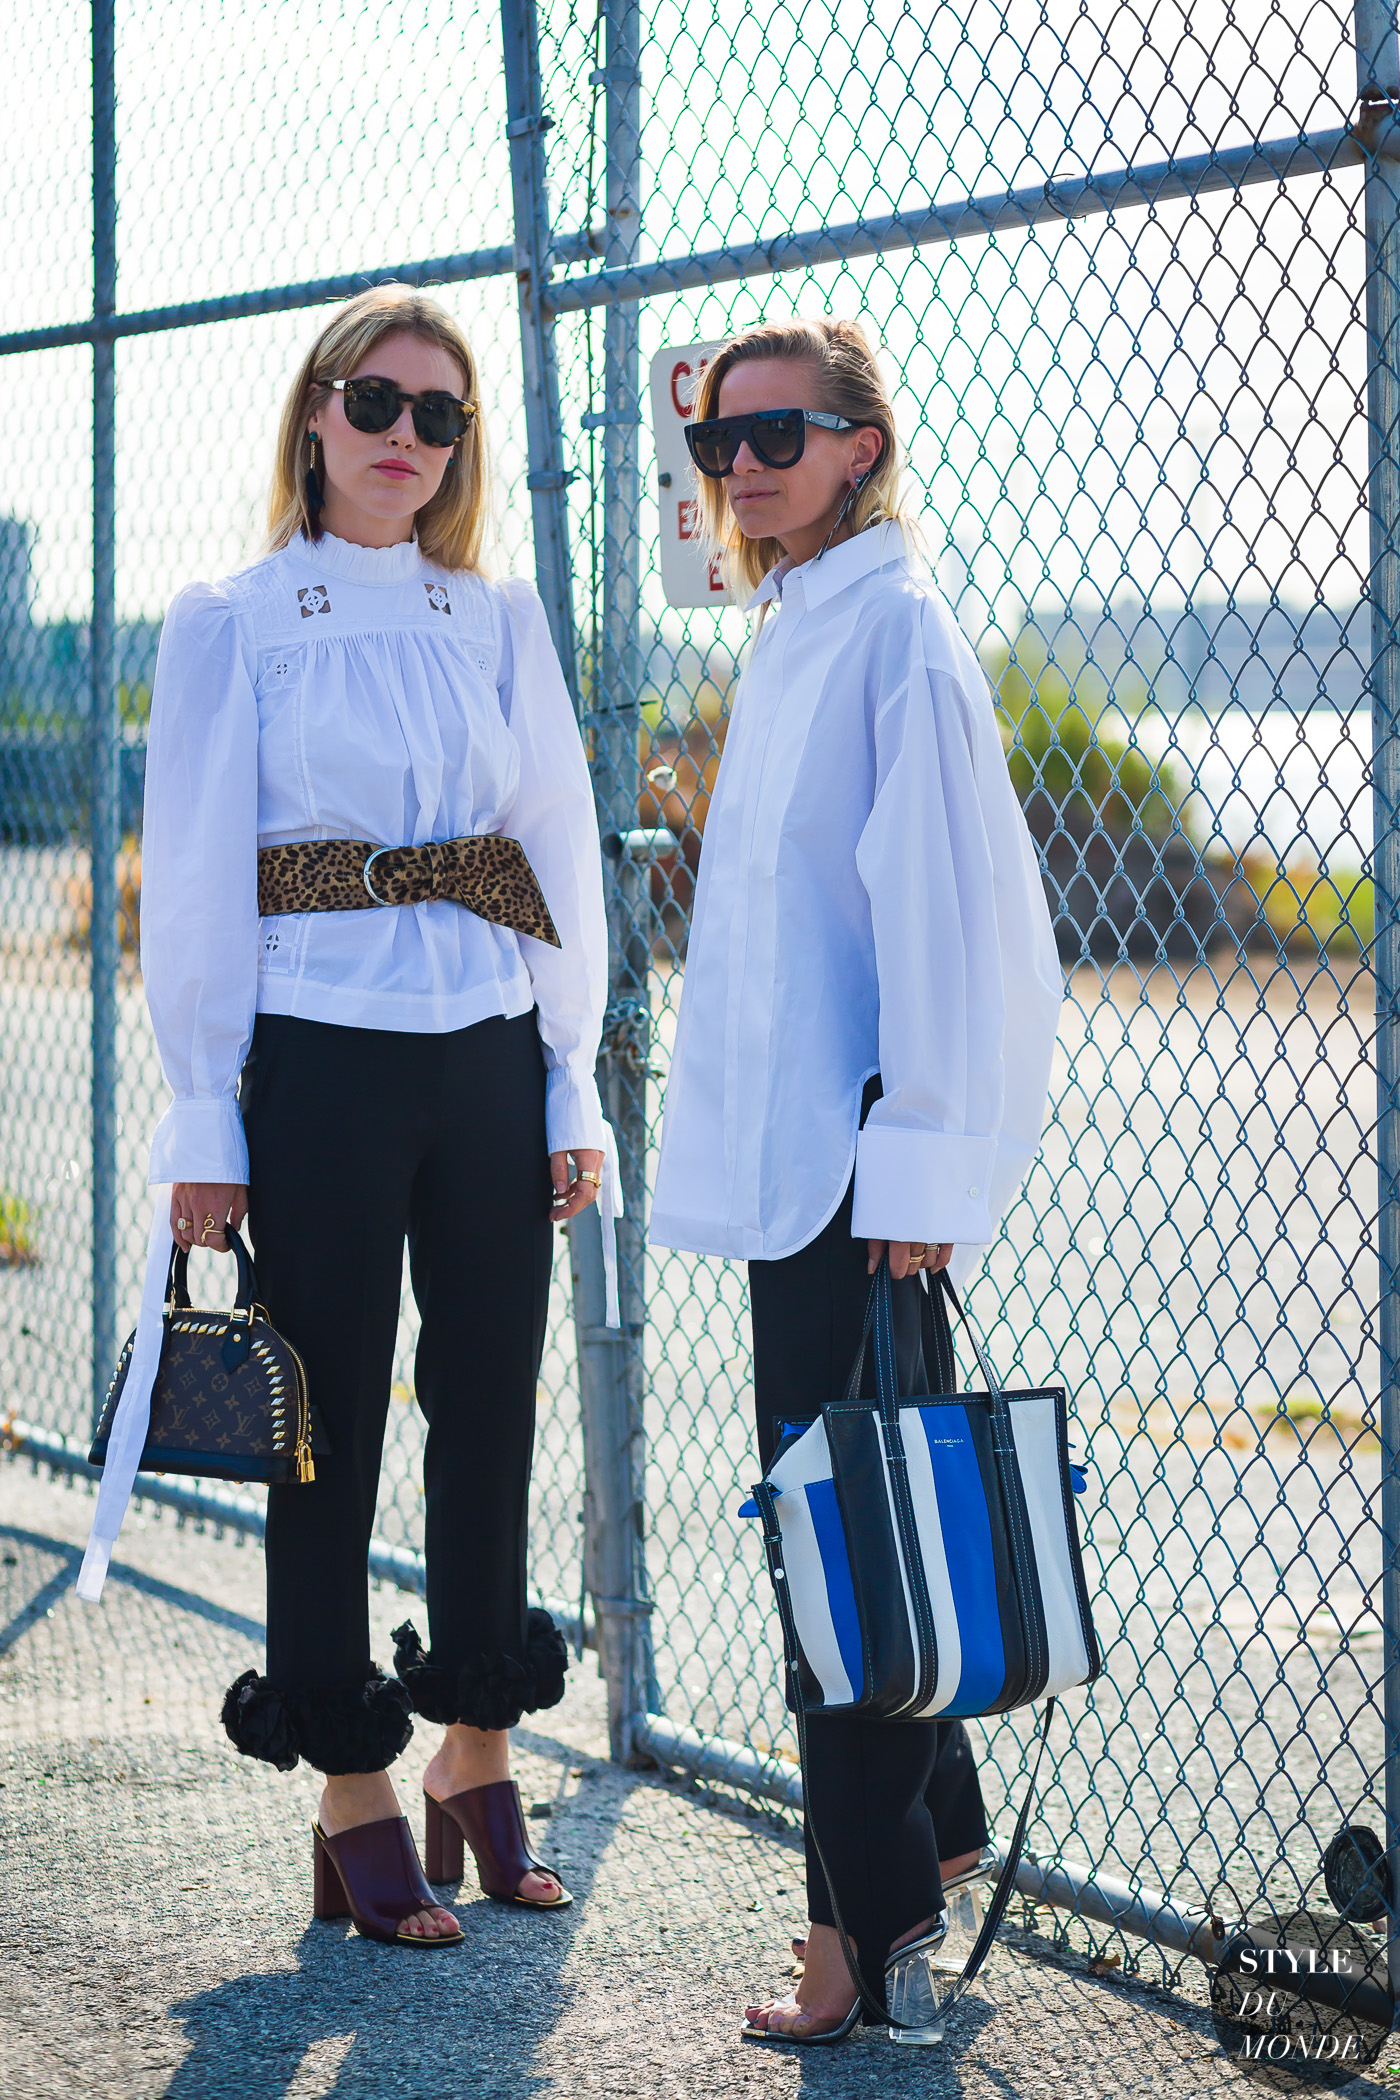 Annabel rosendahl and celine aagaard Celine fashion street style